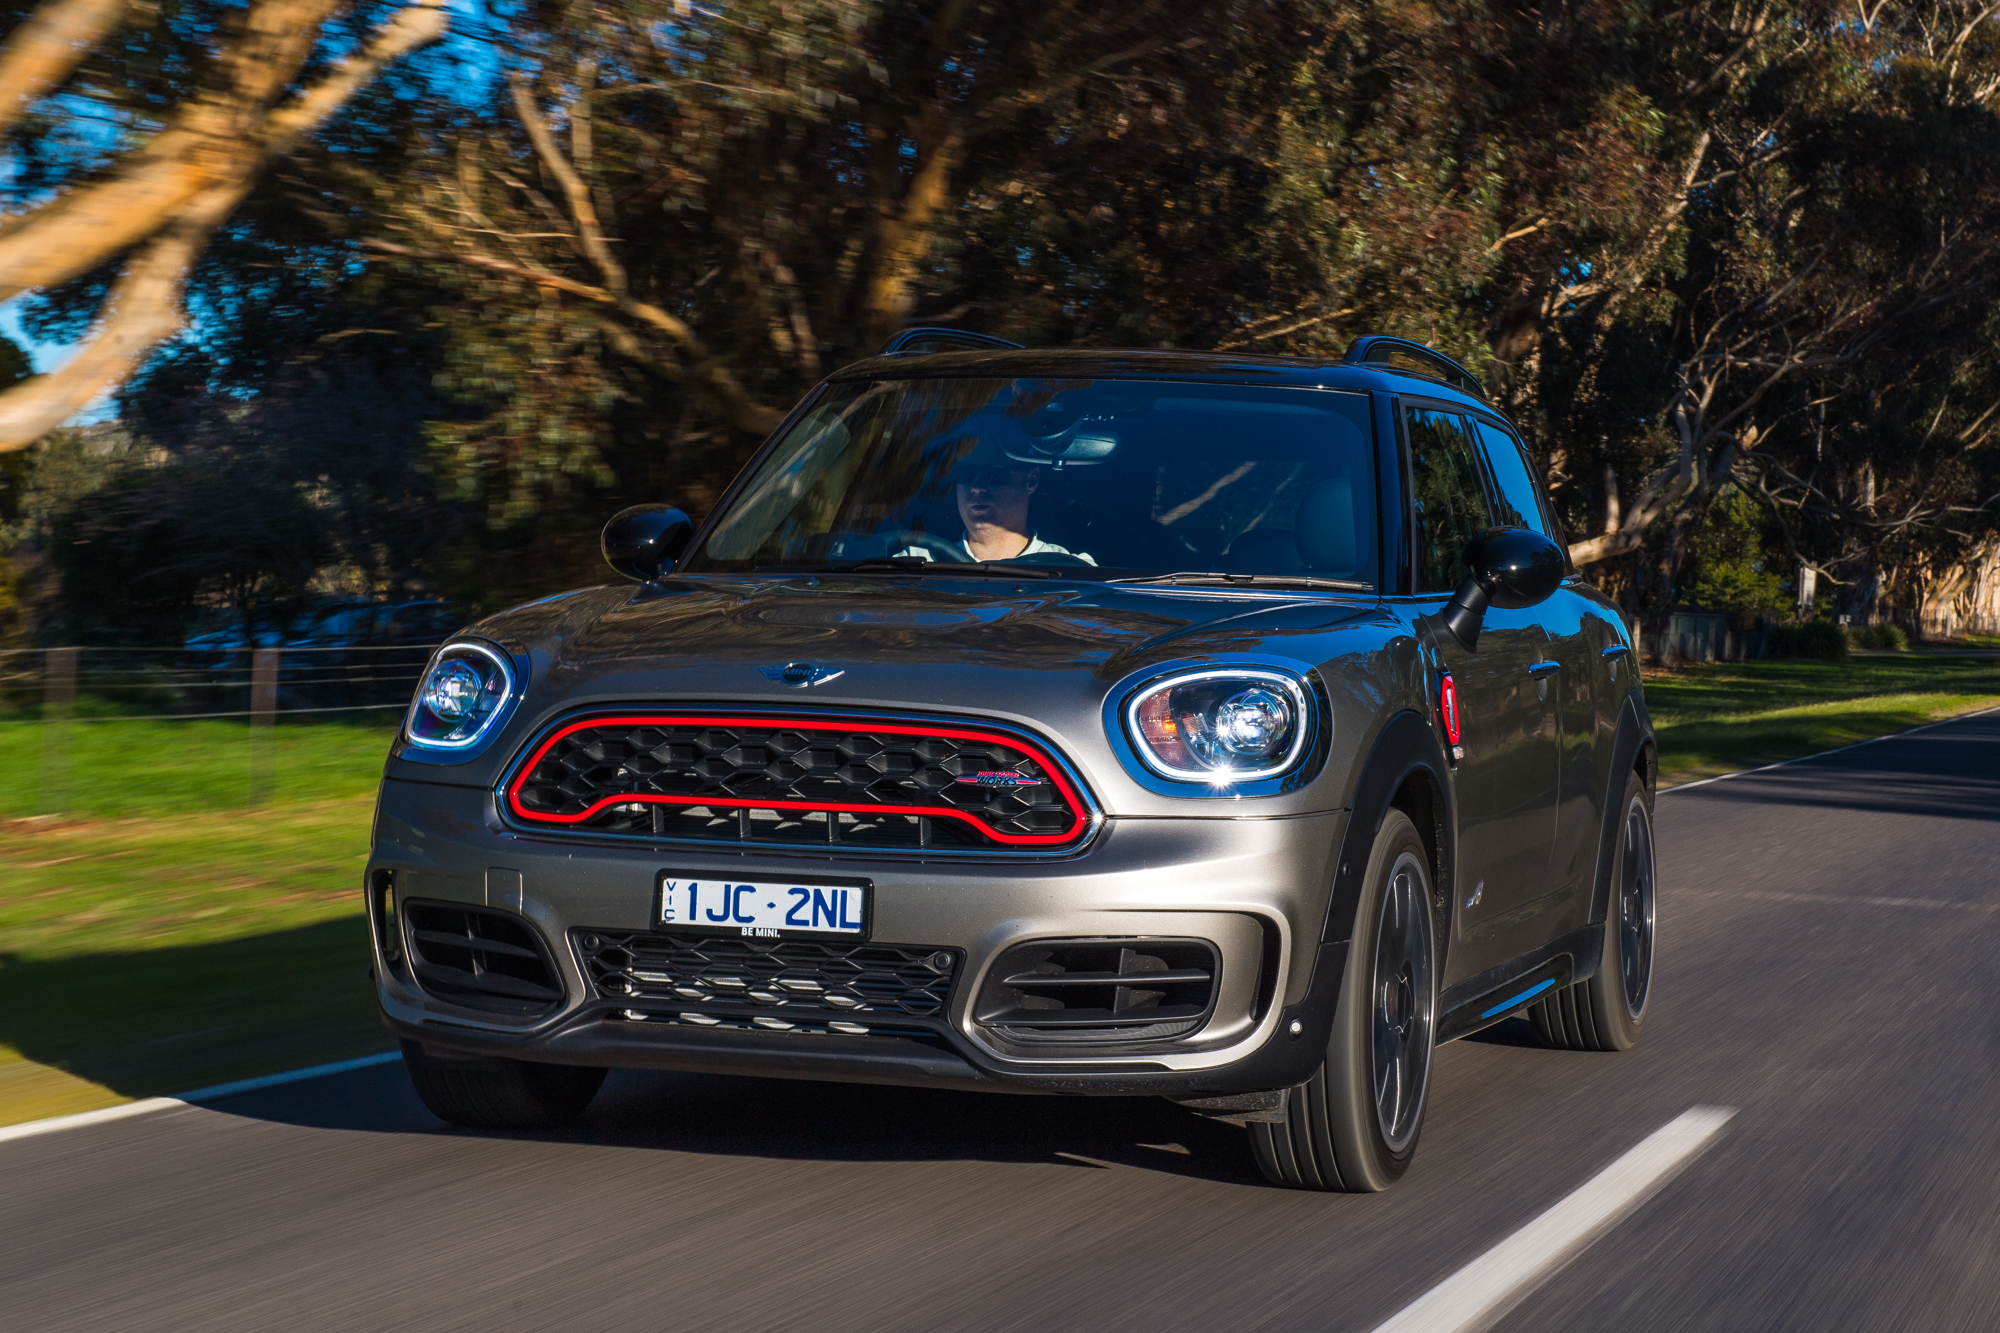 2017 Mini John Cooper Works Countryman quick spin review